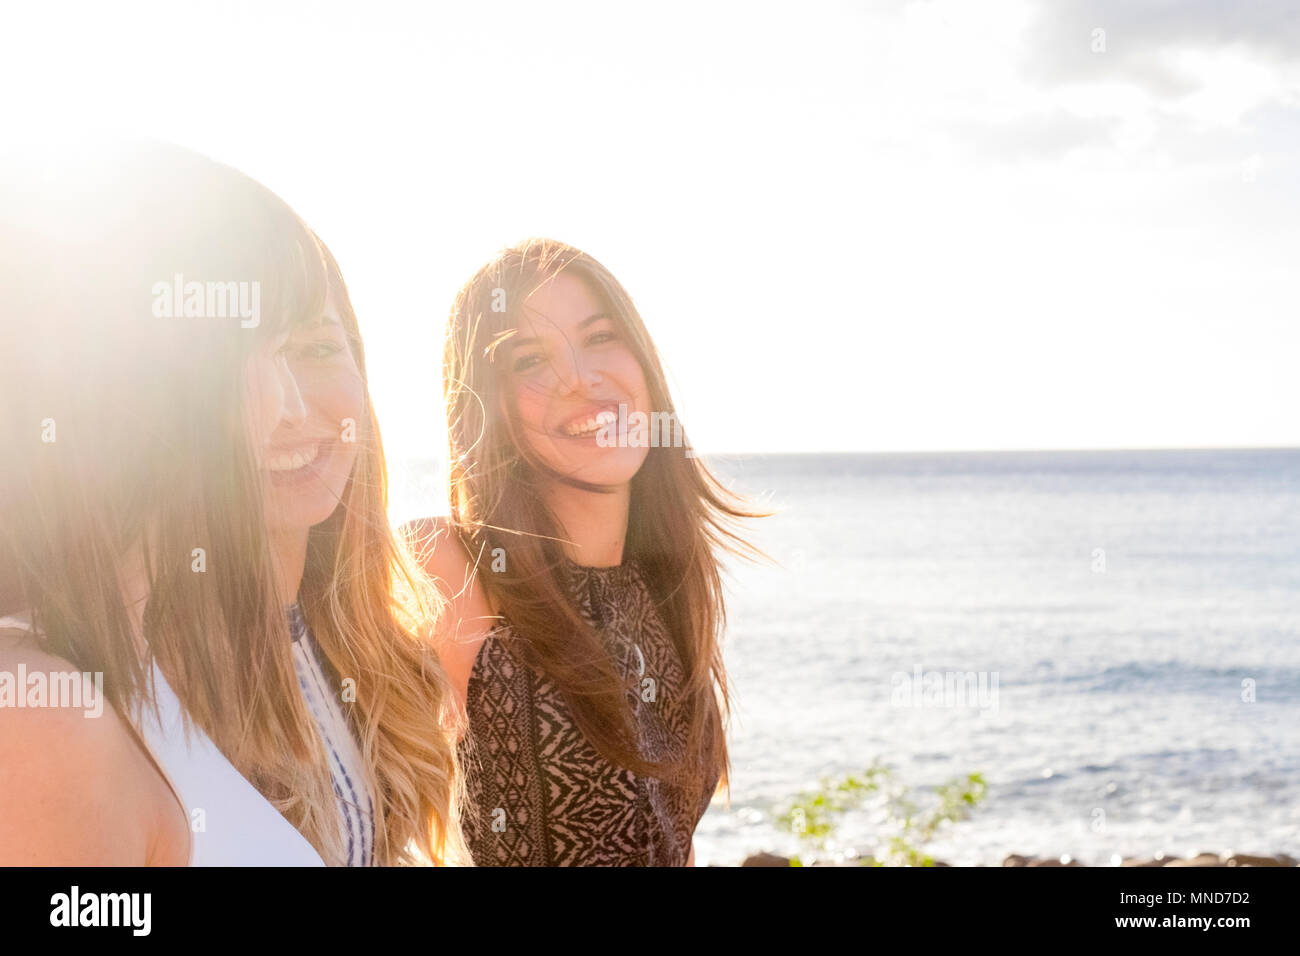 Three young women friends walk together on a wall near the beach in Tenerife. Enjoy the vacation under a blue sky with yellow sun. Hands by hands. - Stock Image